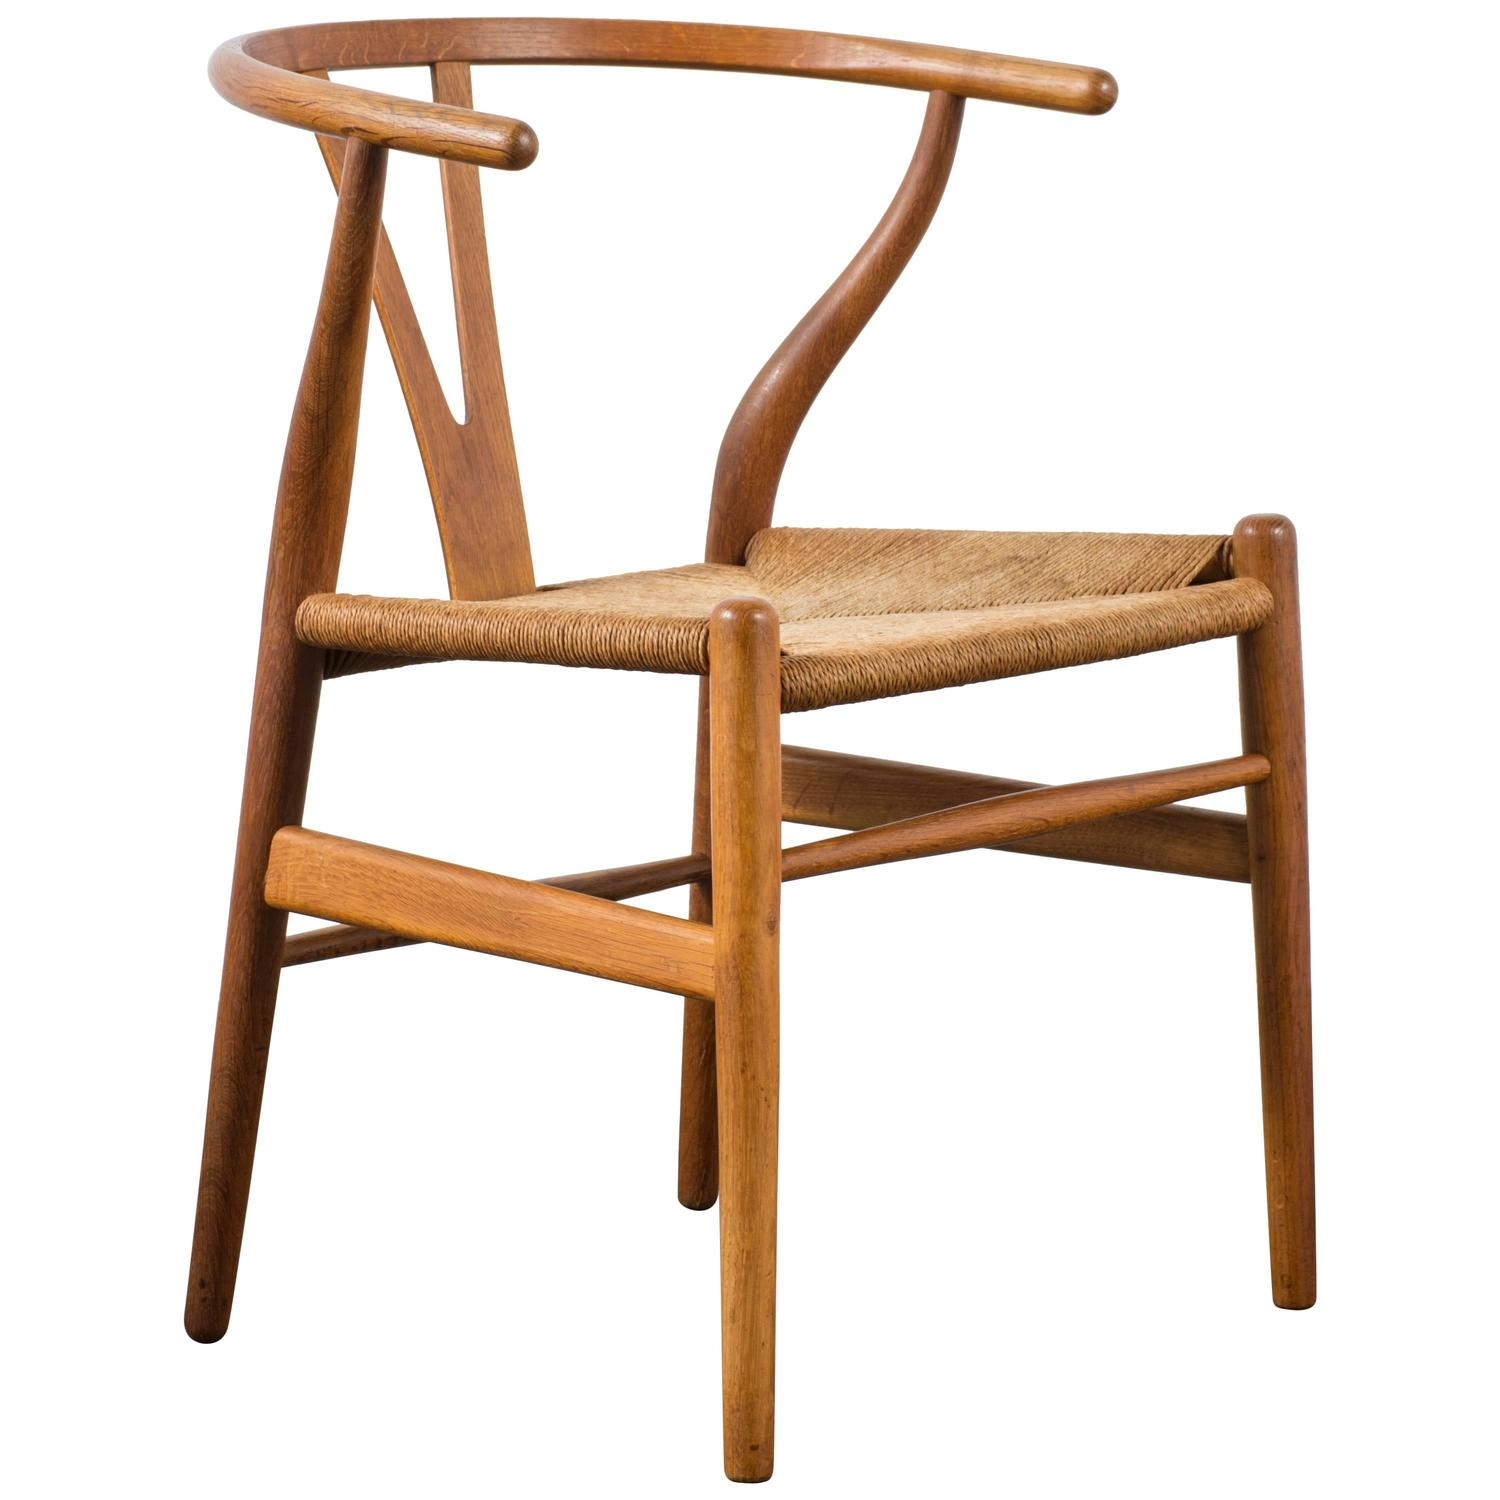 Early Vintage Mid Century Wishbone Chair by Hans Wegner at 1stdibs